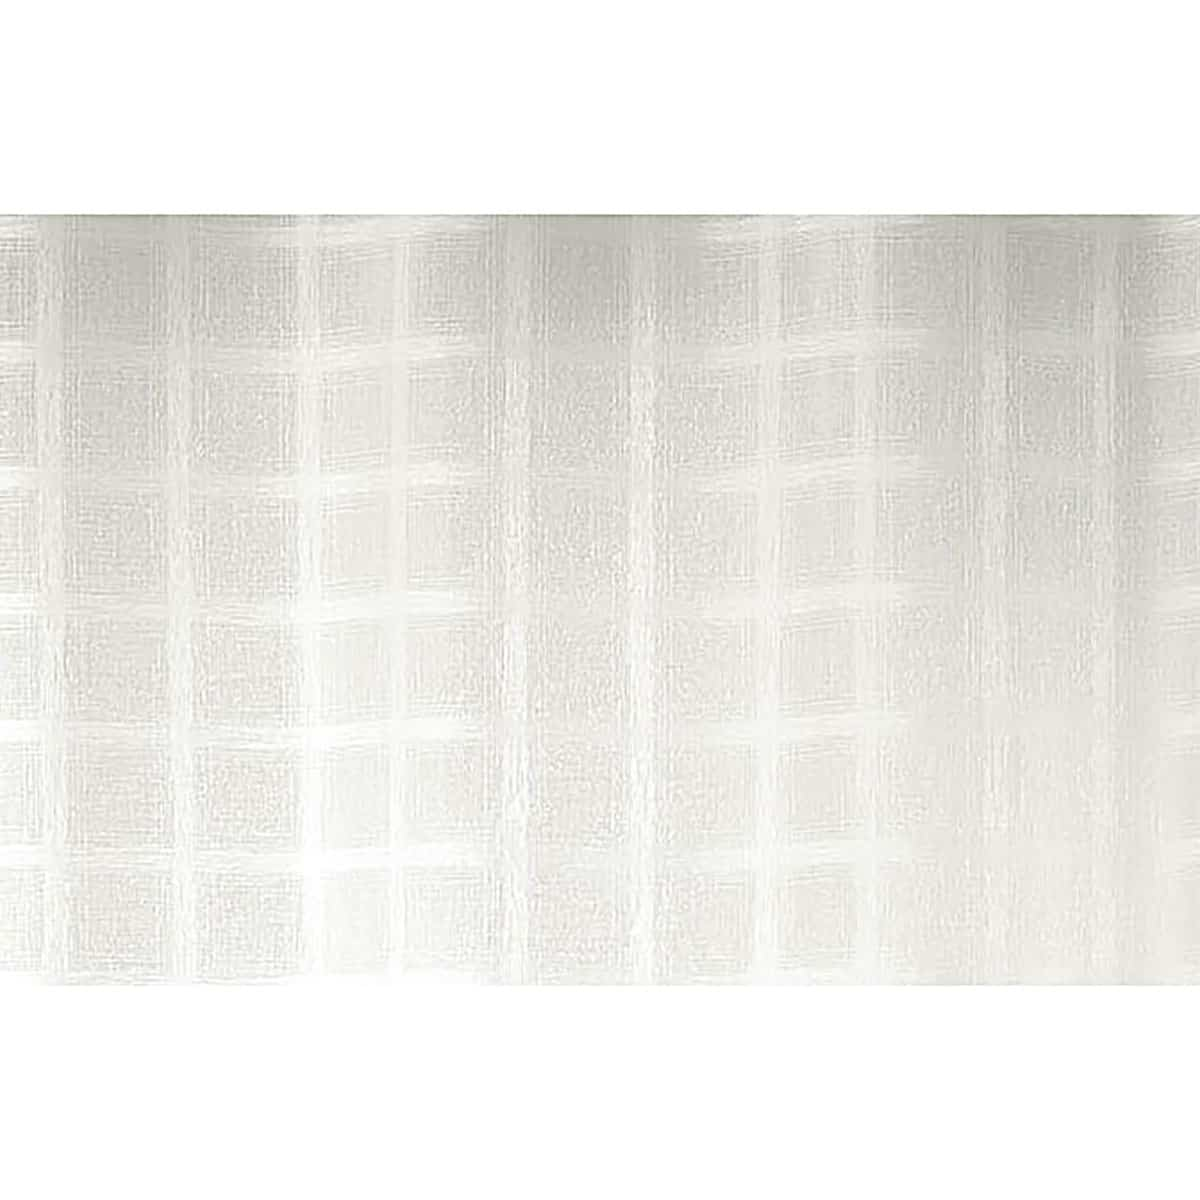 Set of 2 Curtain Panel with Eyelets Sanded Voile Candide 55W x 95L Beige